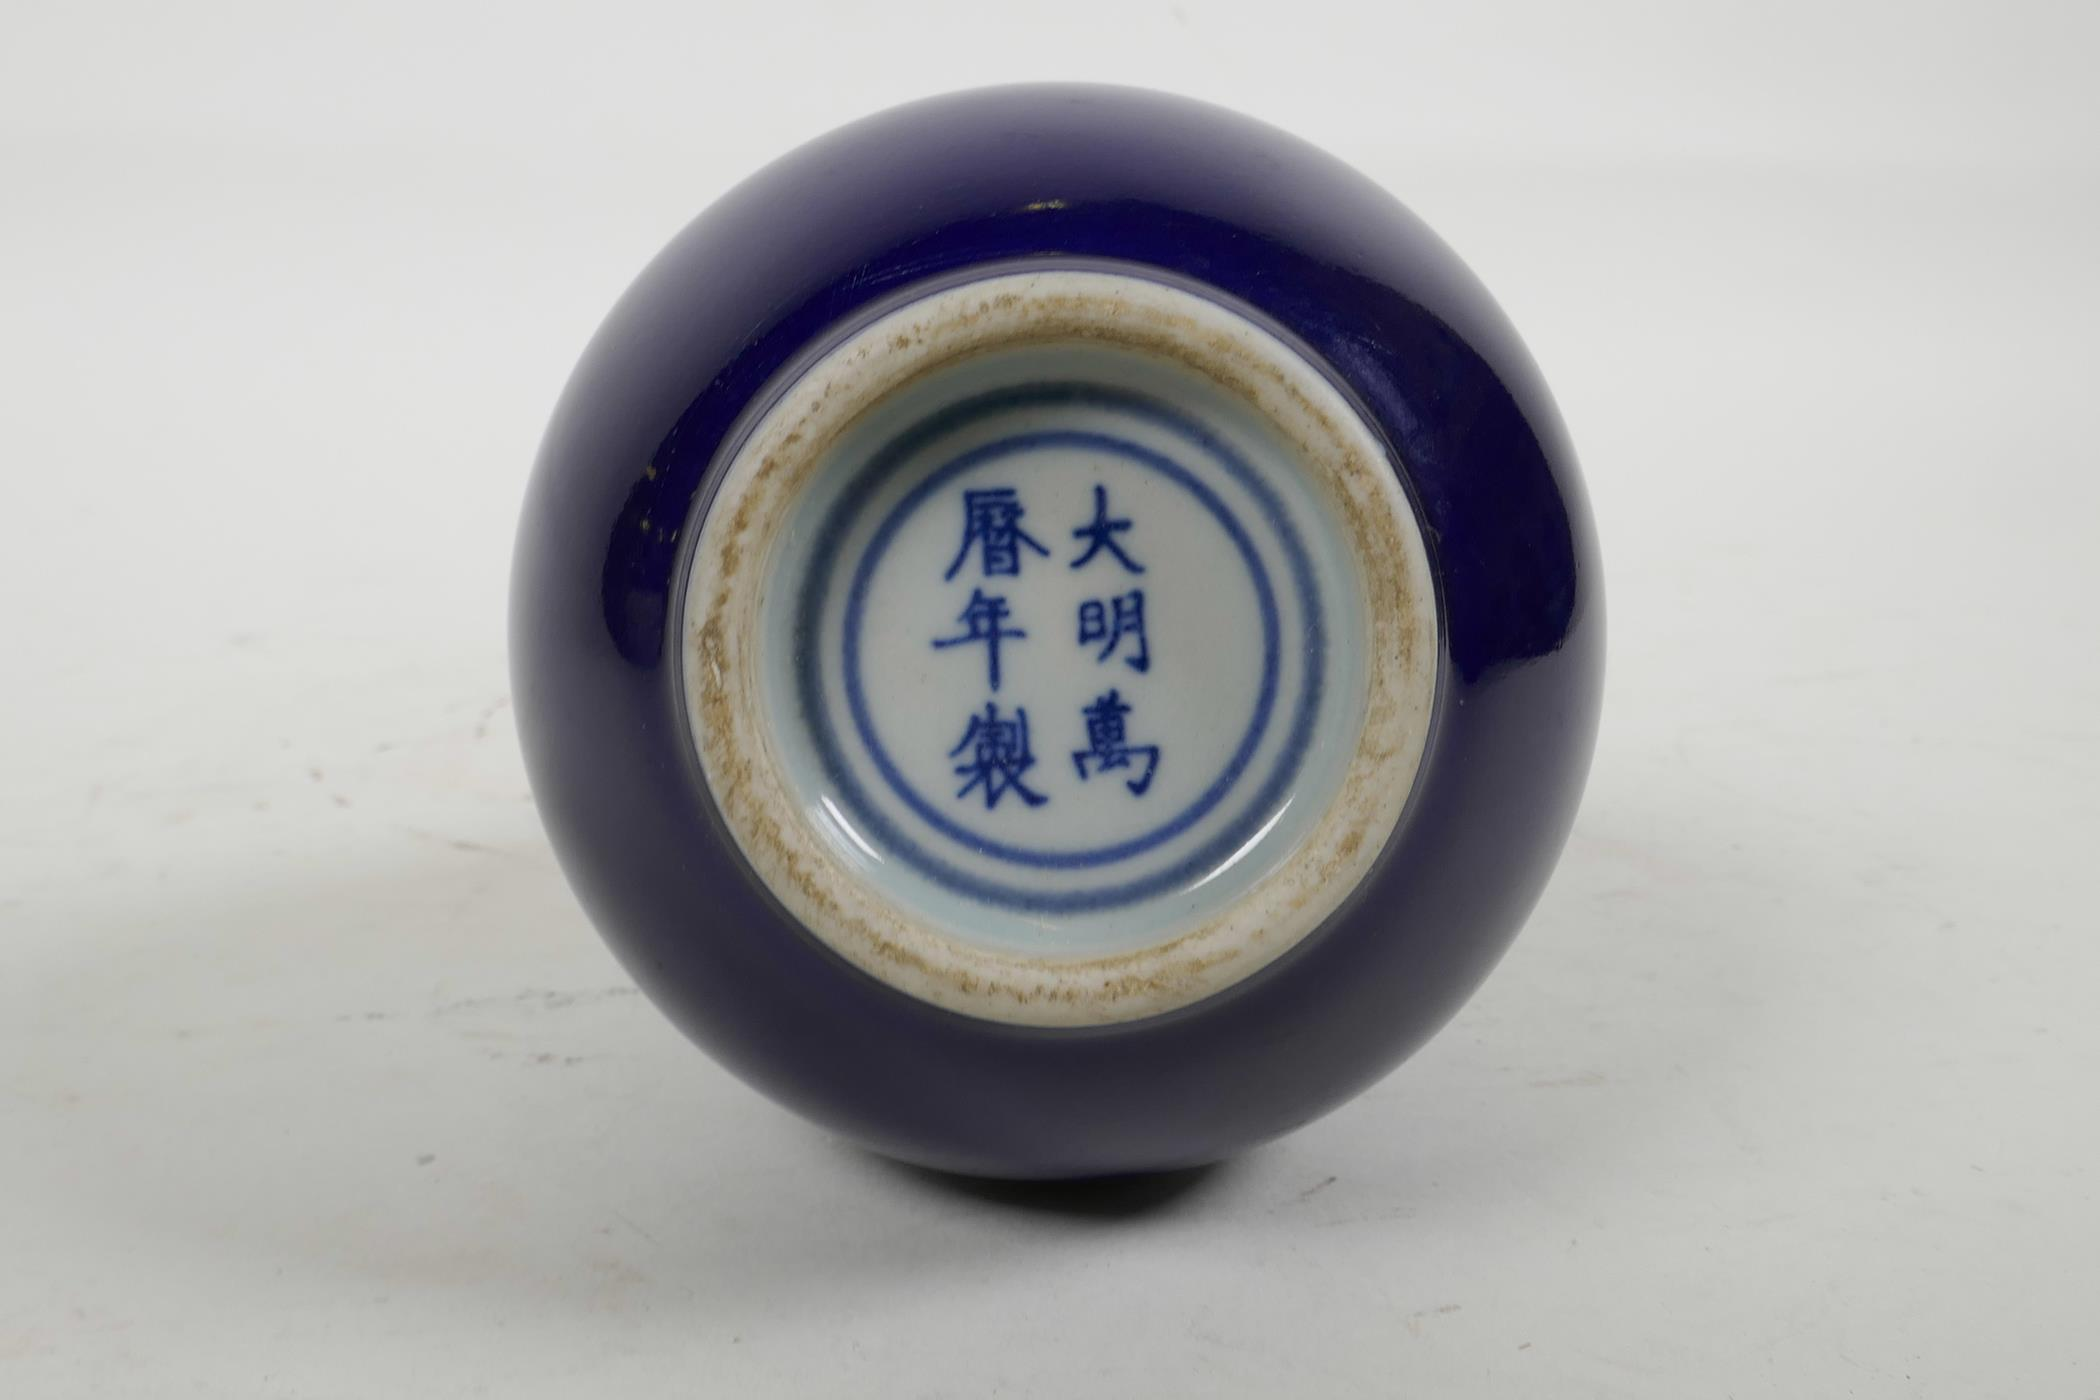 Lot 46 - A Chinese dark blue glazed bottle vase, the base marked with two concentric rings and six